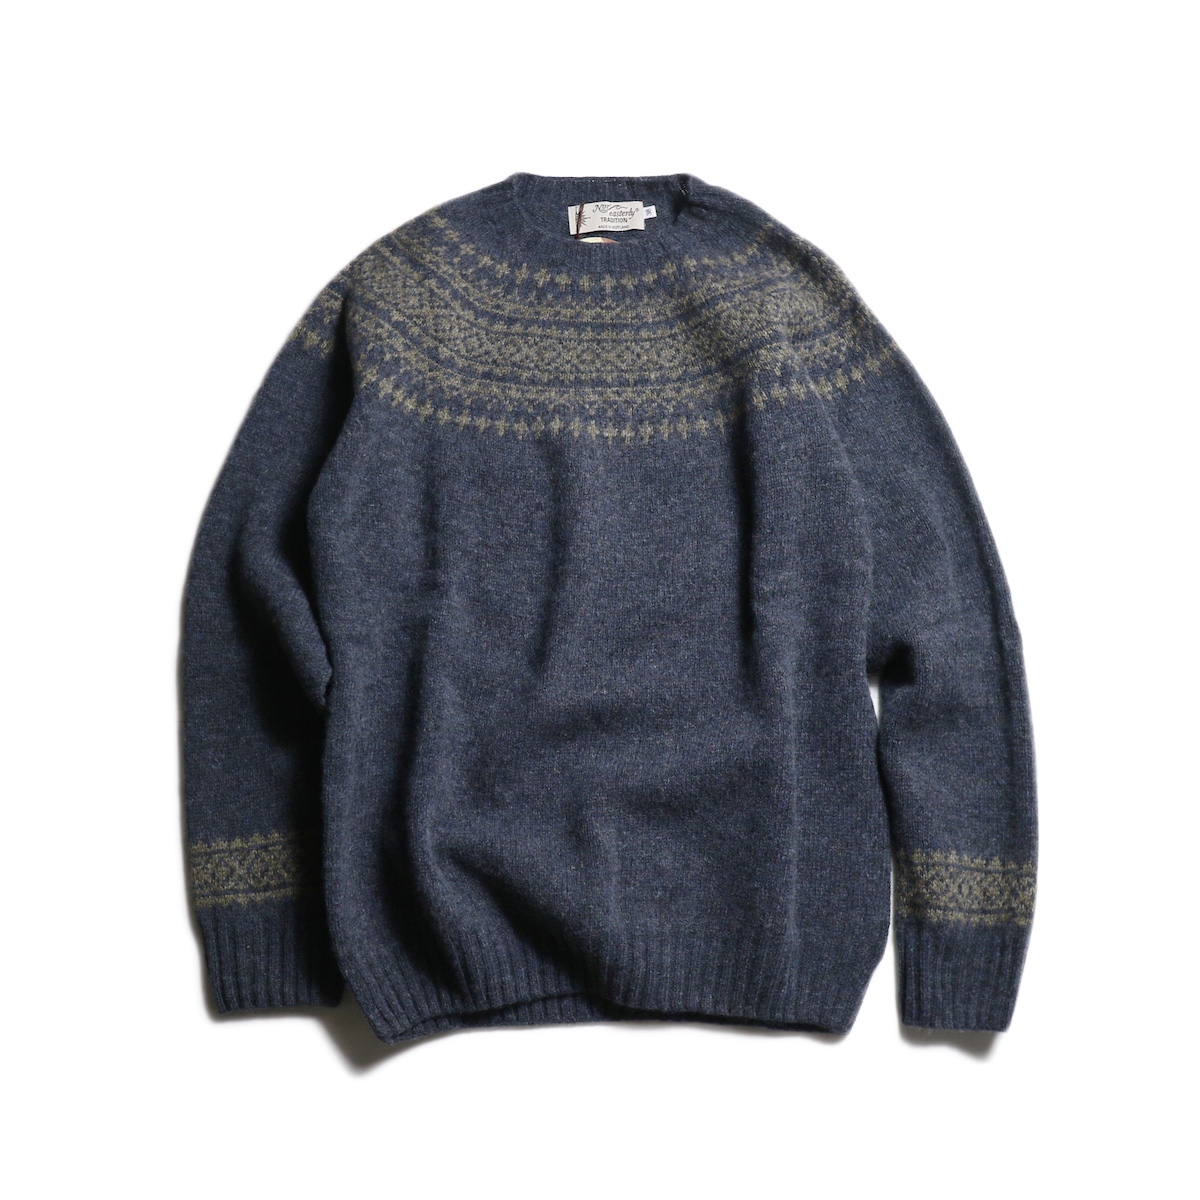 NOR'EASTERLY / L/S WIDE NECK 2TONE NORDIC (Moon Shadow×Oyster)